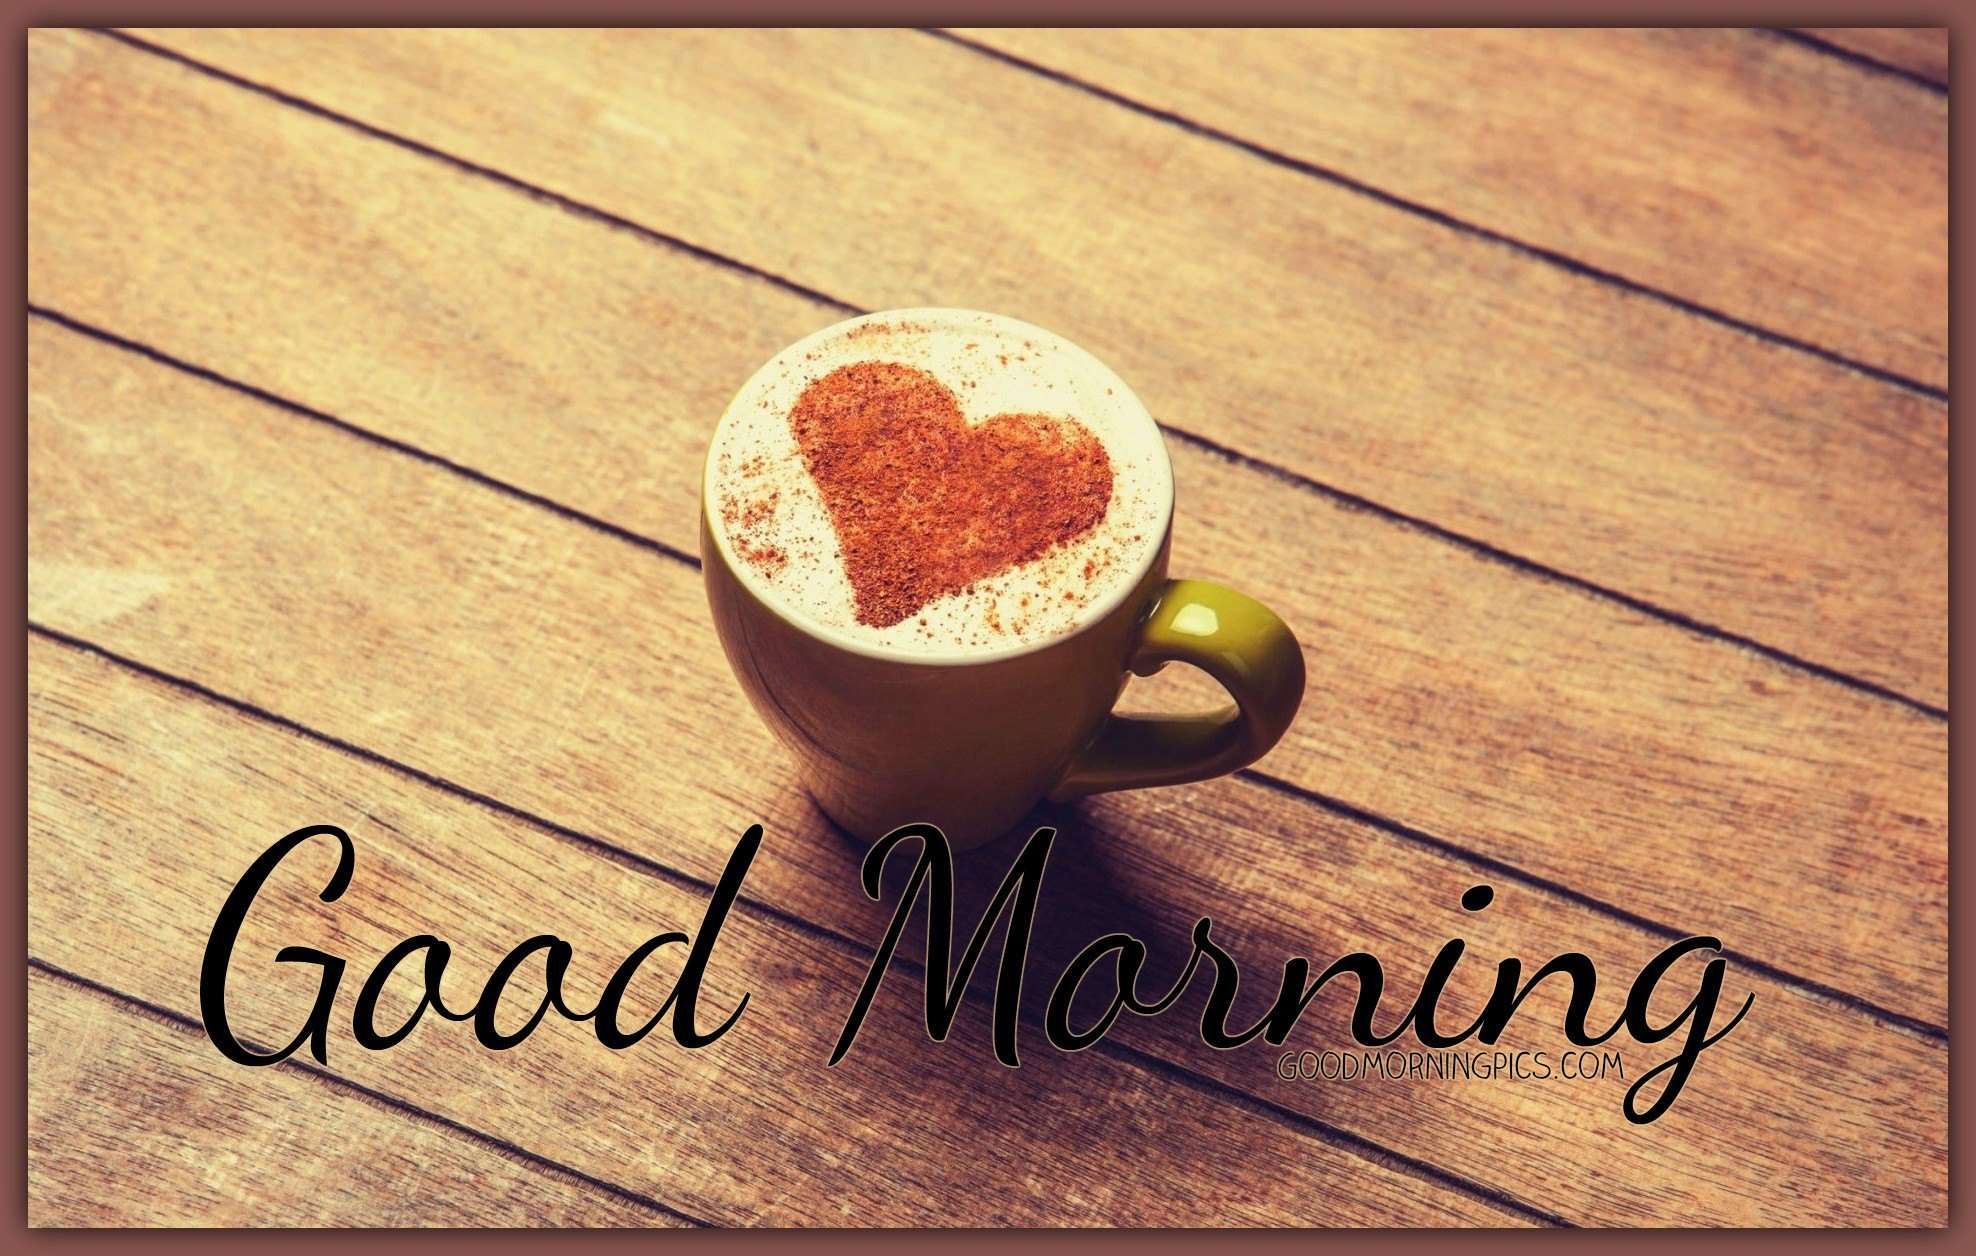 Love Wallpapers Good Morning : Good Morning love coffee and quote goodmorningpics.com